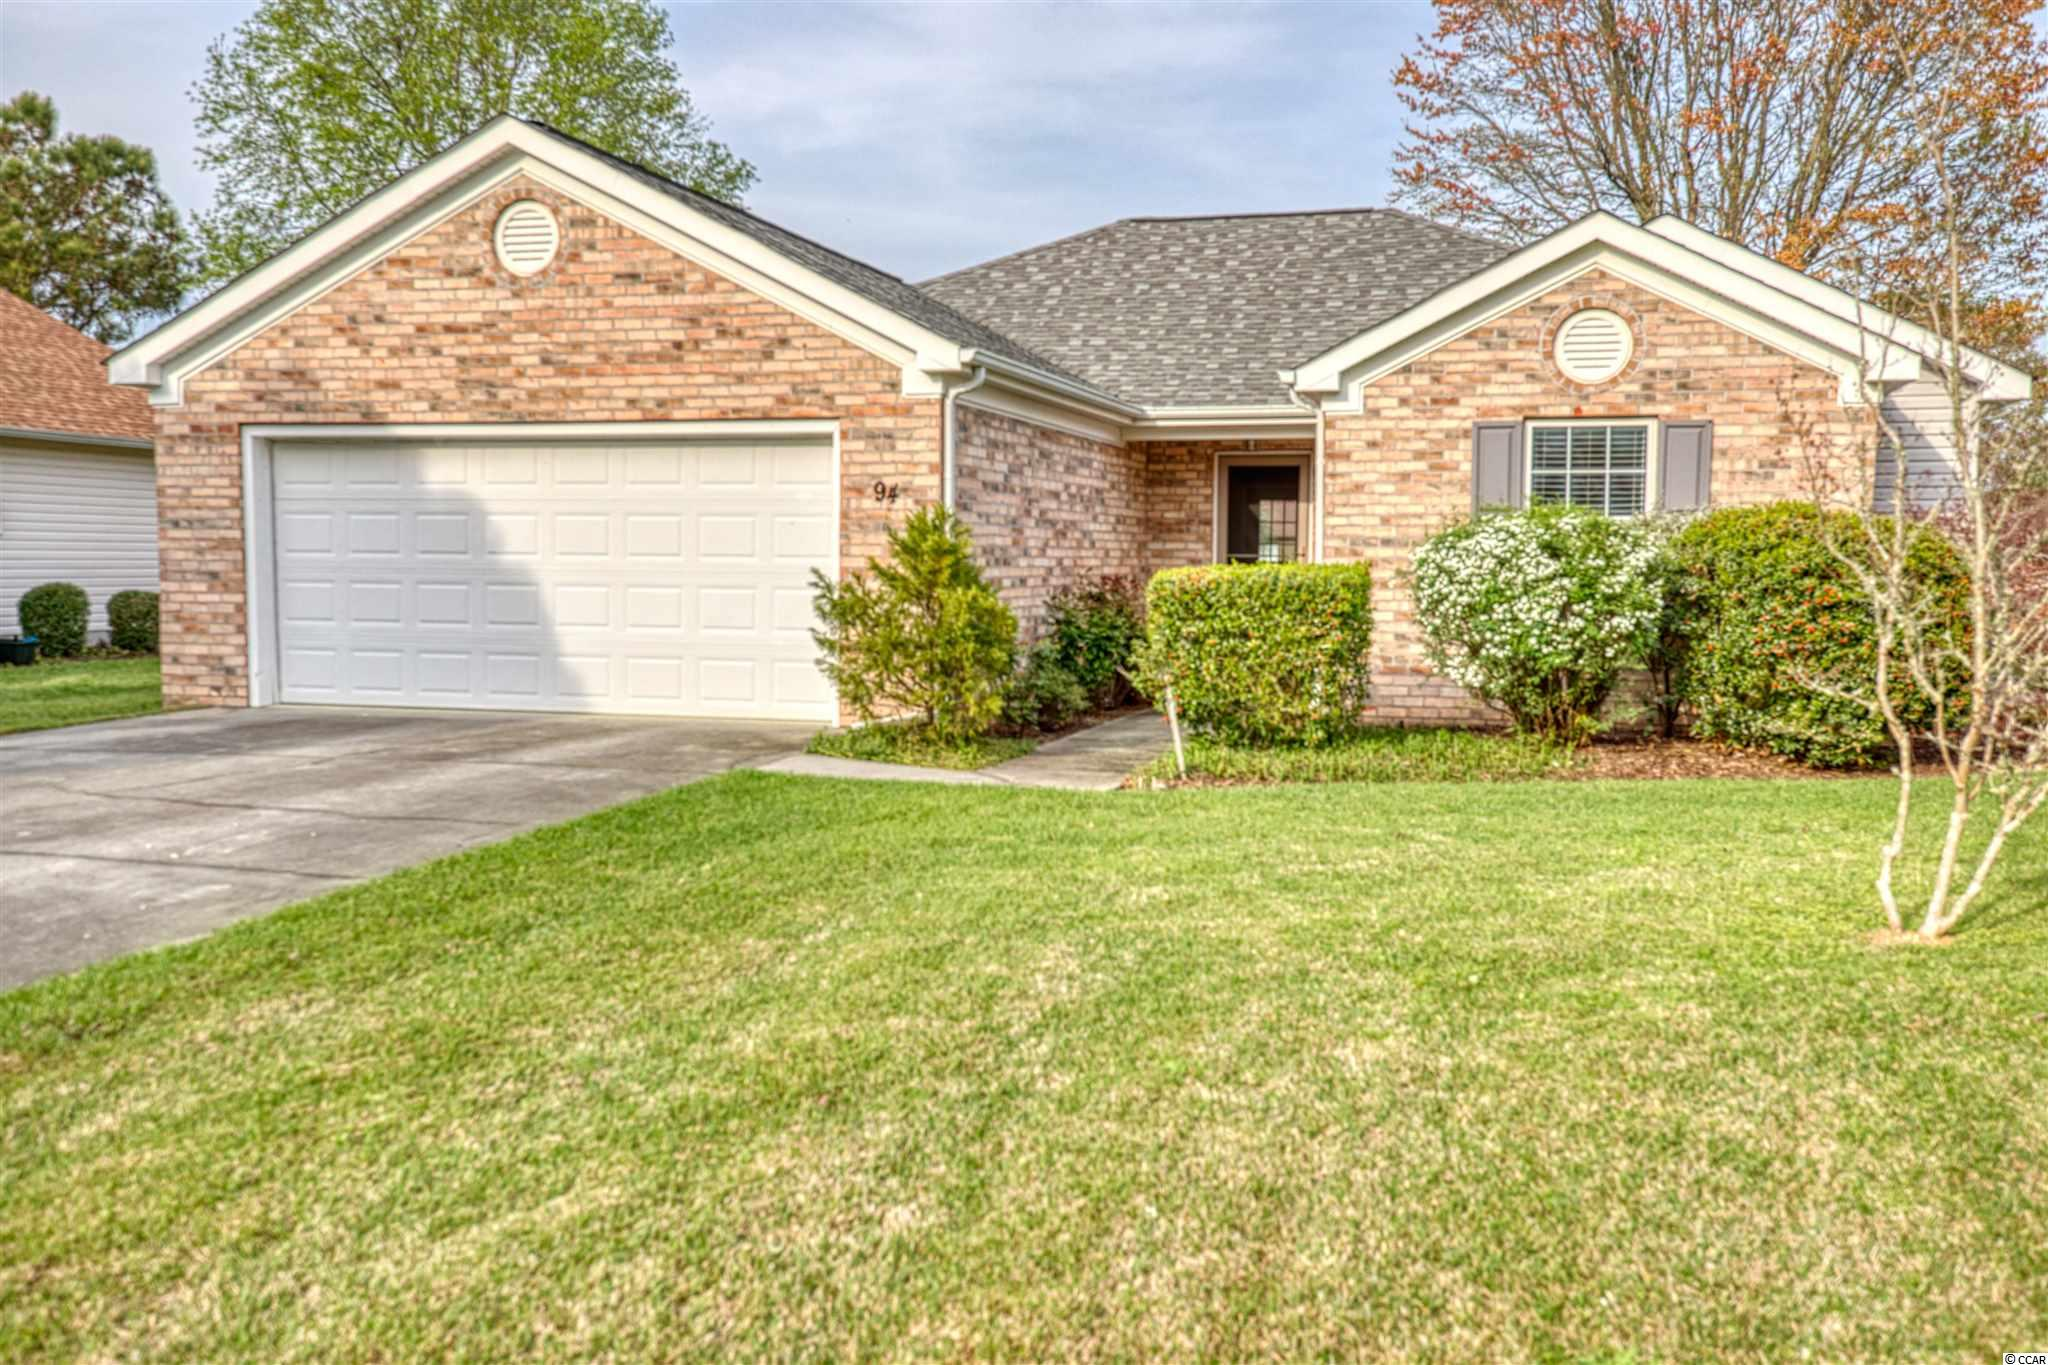 This three bedroom two bath home is located in the very desirable neighborhood of Pawleys Retreat.  Beautifully maintained home with LVP flooring, custom cabinetry, stainless steel appliances, wainscoting, split bedroom plan, two car garage and peaceful fenced in back yard overlooking the lake.